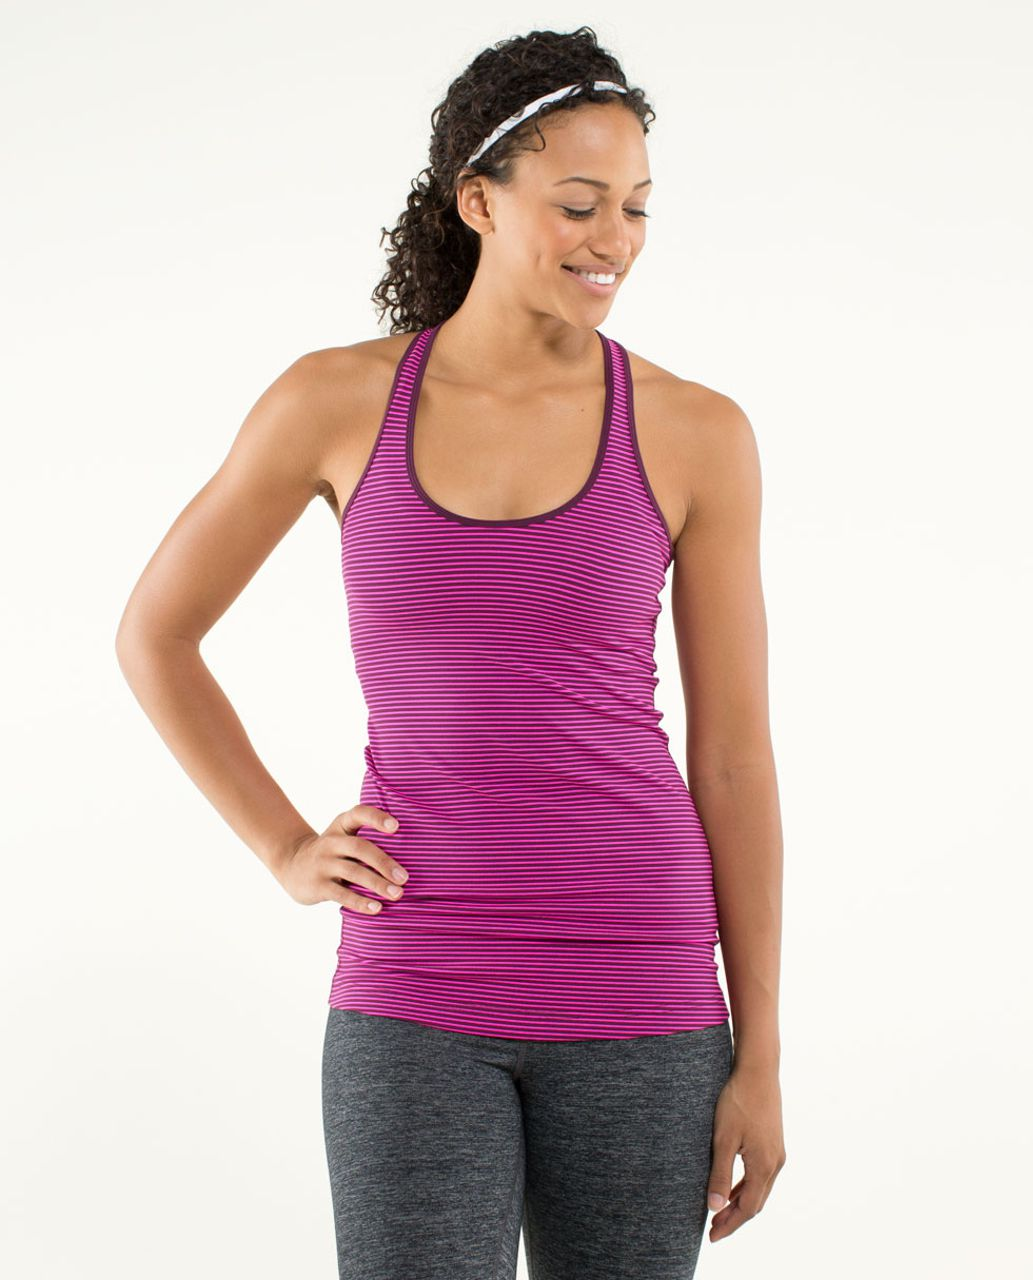 Lululemon Cool Racerback - Hyper Stripe Raspberry Glo Light / Plum